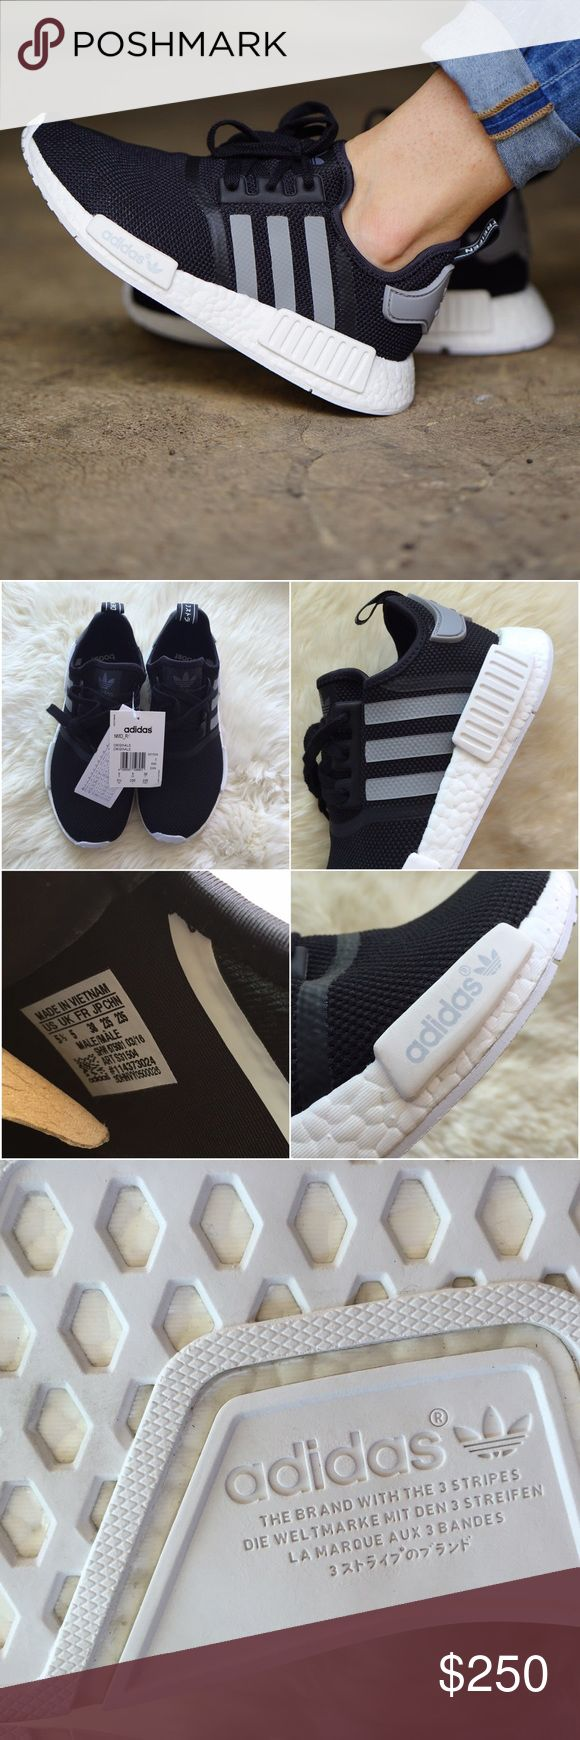 adidas nmd rx1 black camo white adidas shoes men style